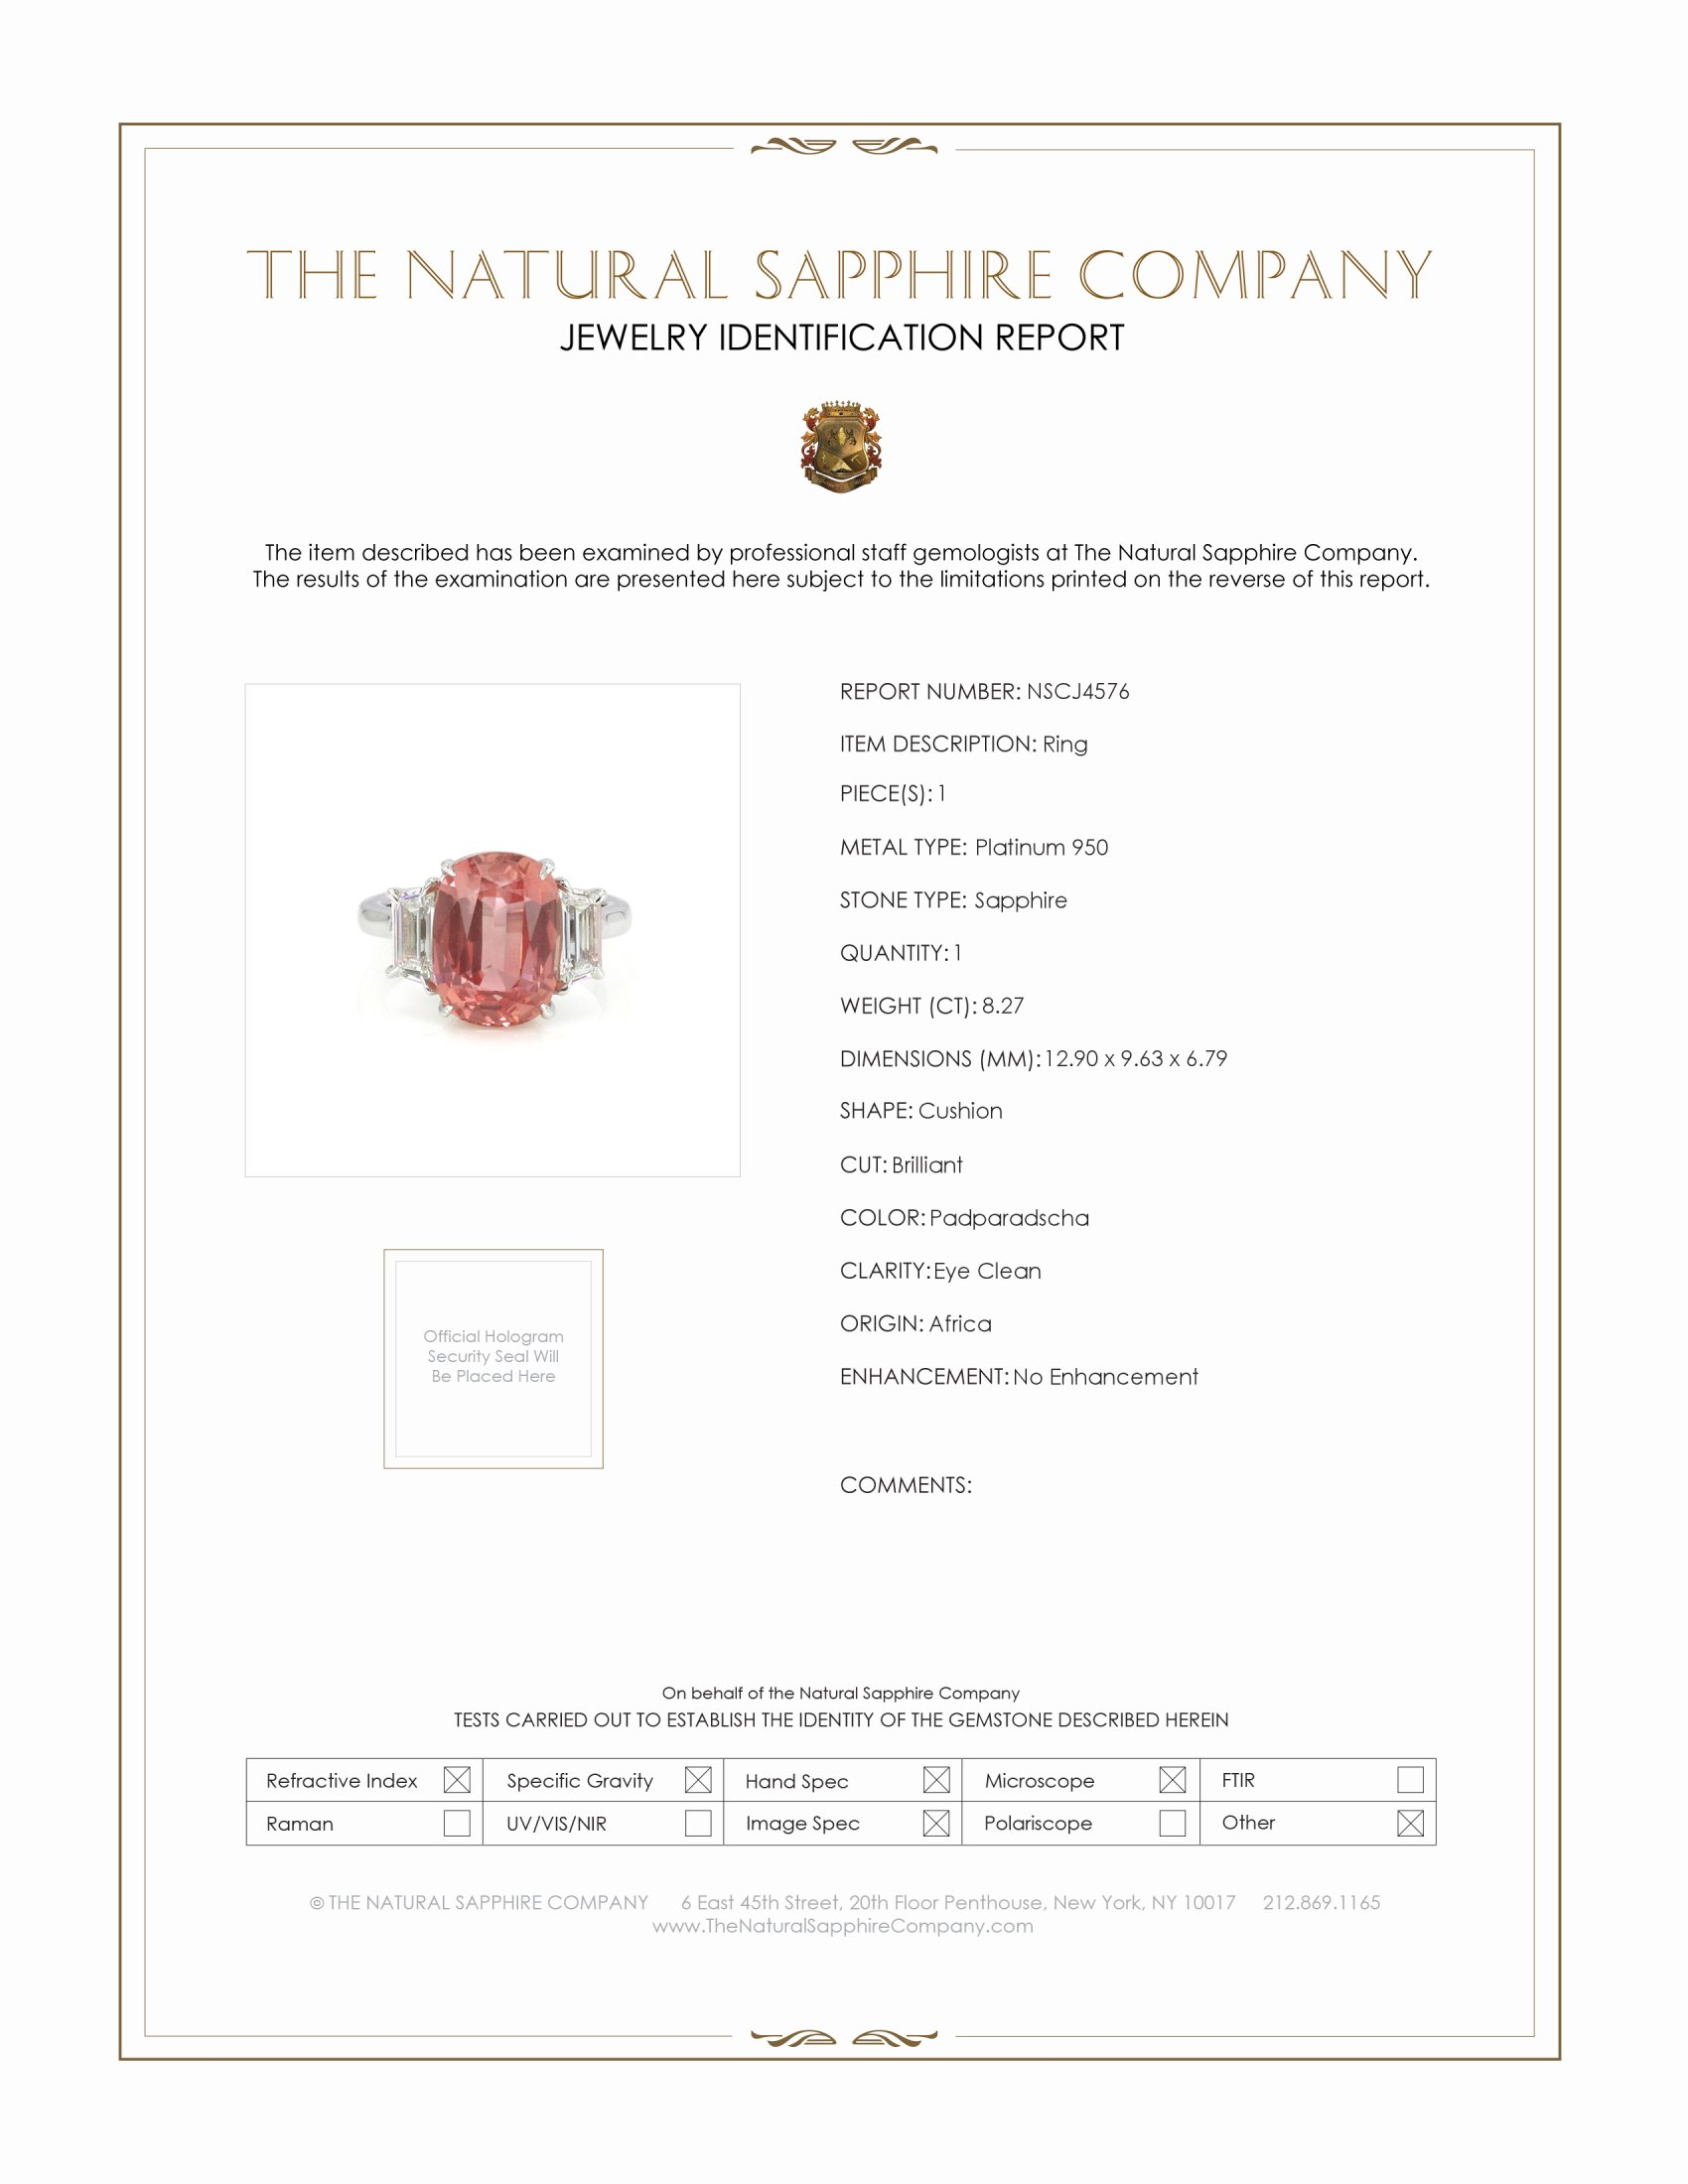 8.27ct Padparadscha Sapphire Ring Certification